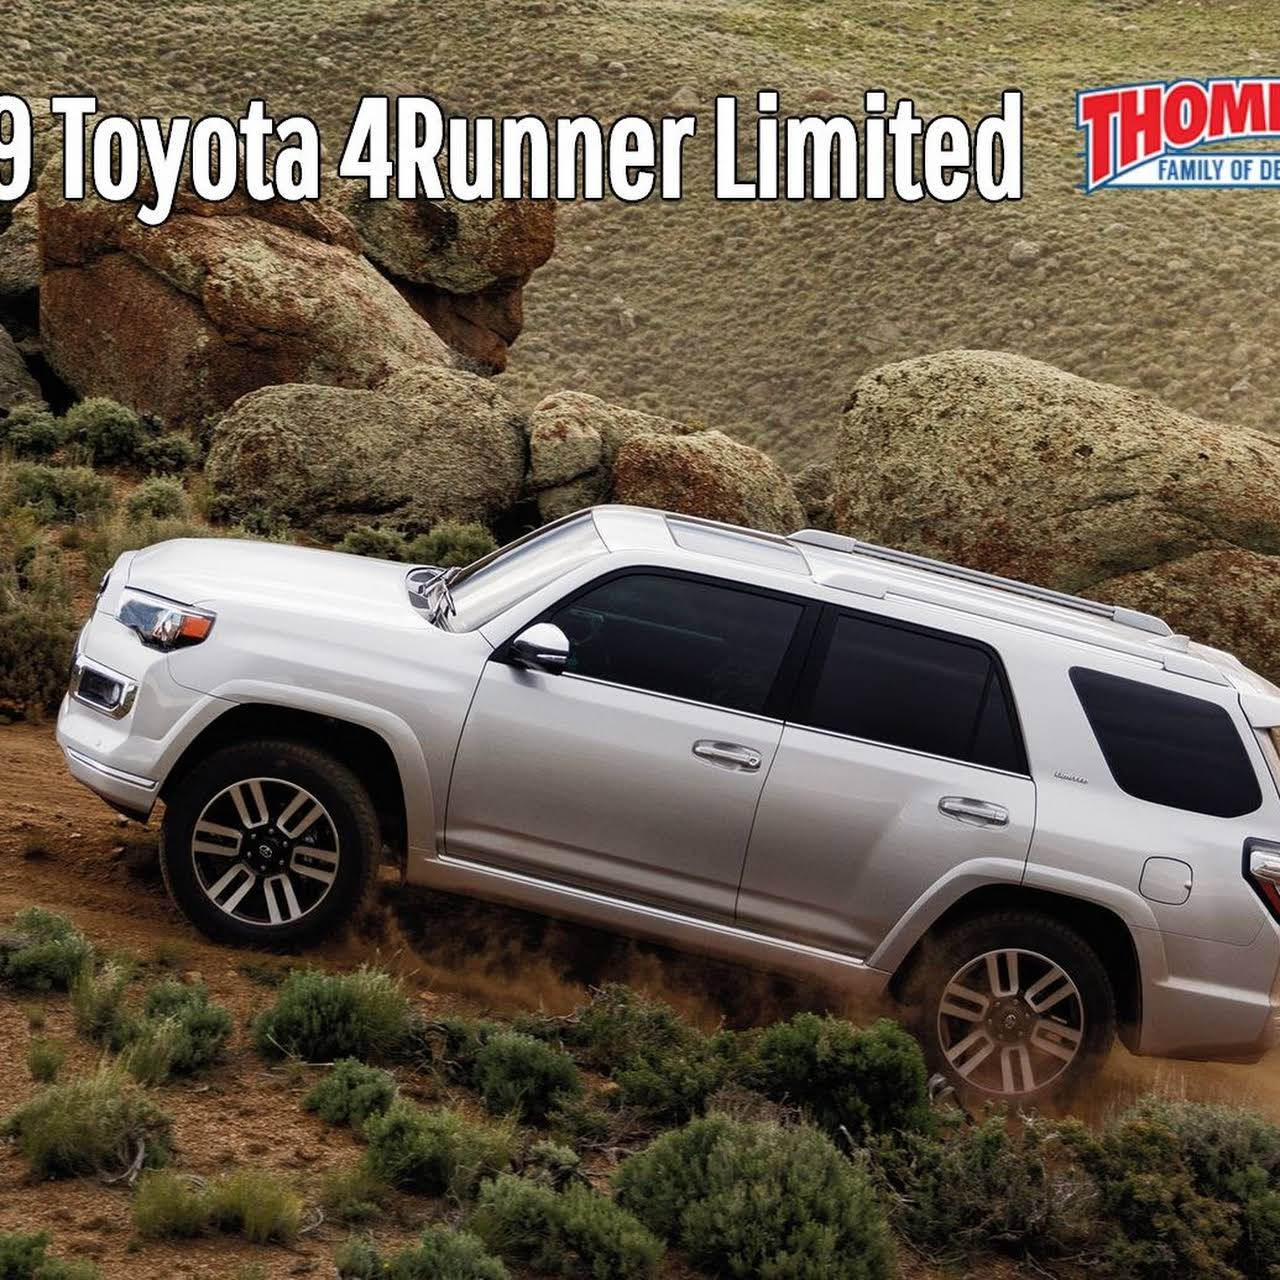 Thompson Toyota Placerville >> Thompsons Toyota Toyota Dealer In Placerville